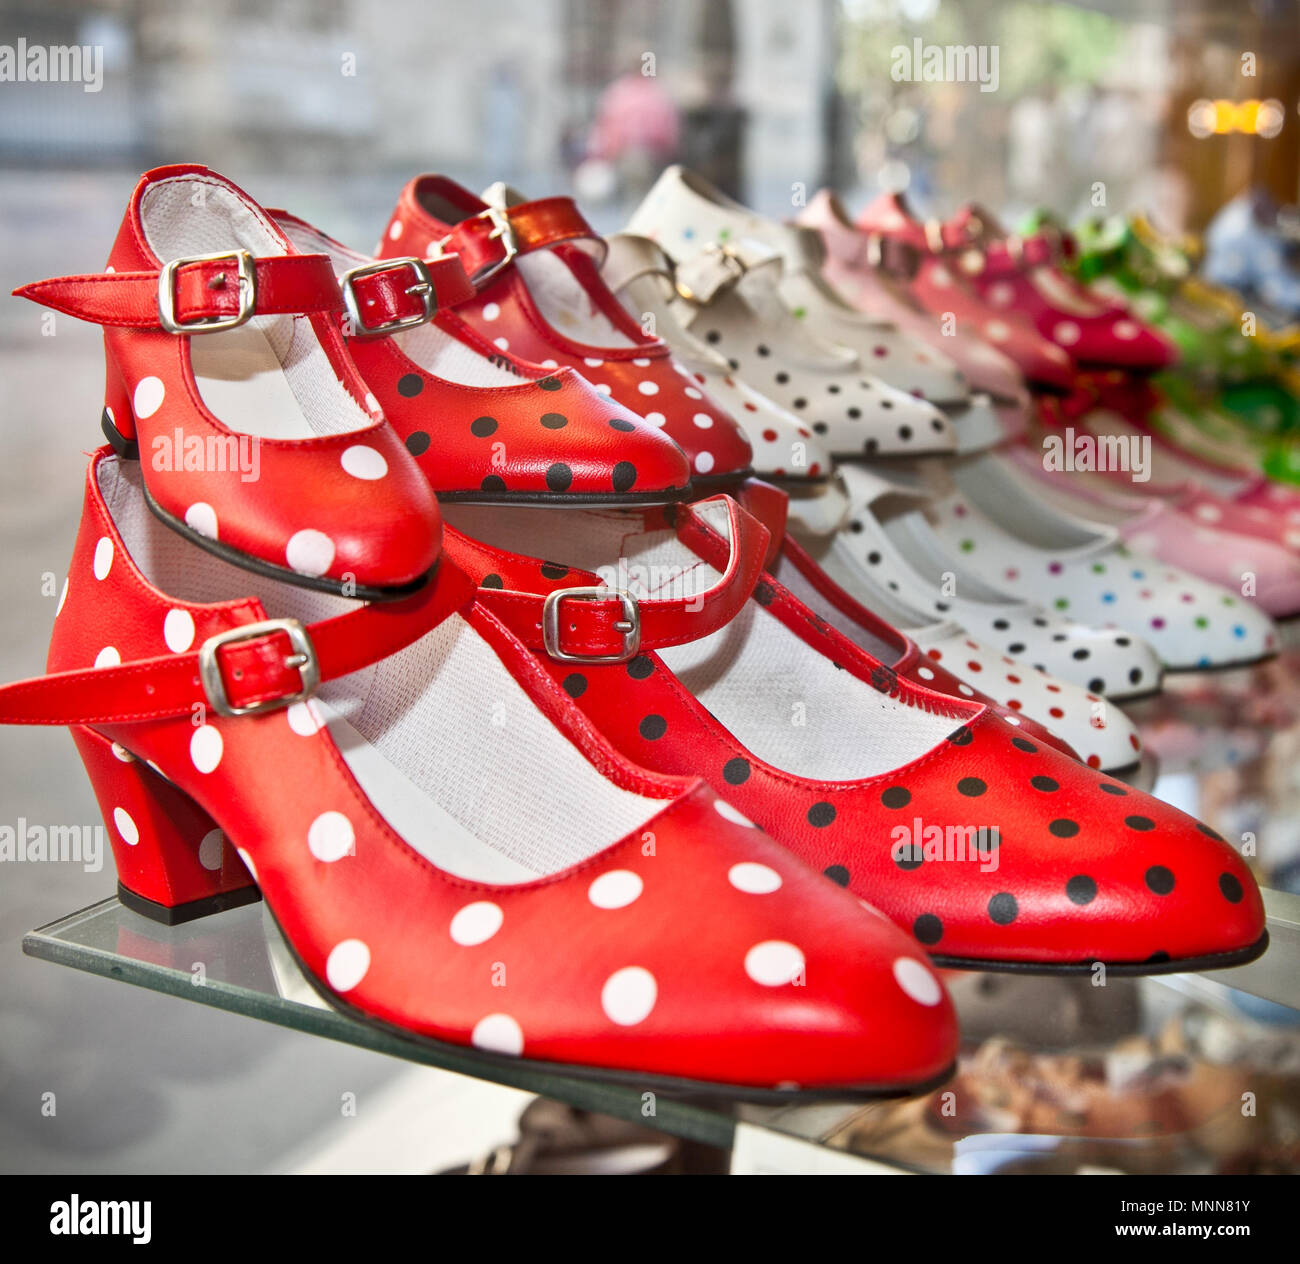 Flamenco dancing shoes or gypsy shoes with polka dot spots in shop market, Seville, Spain. - Stock Image